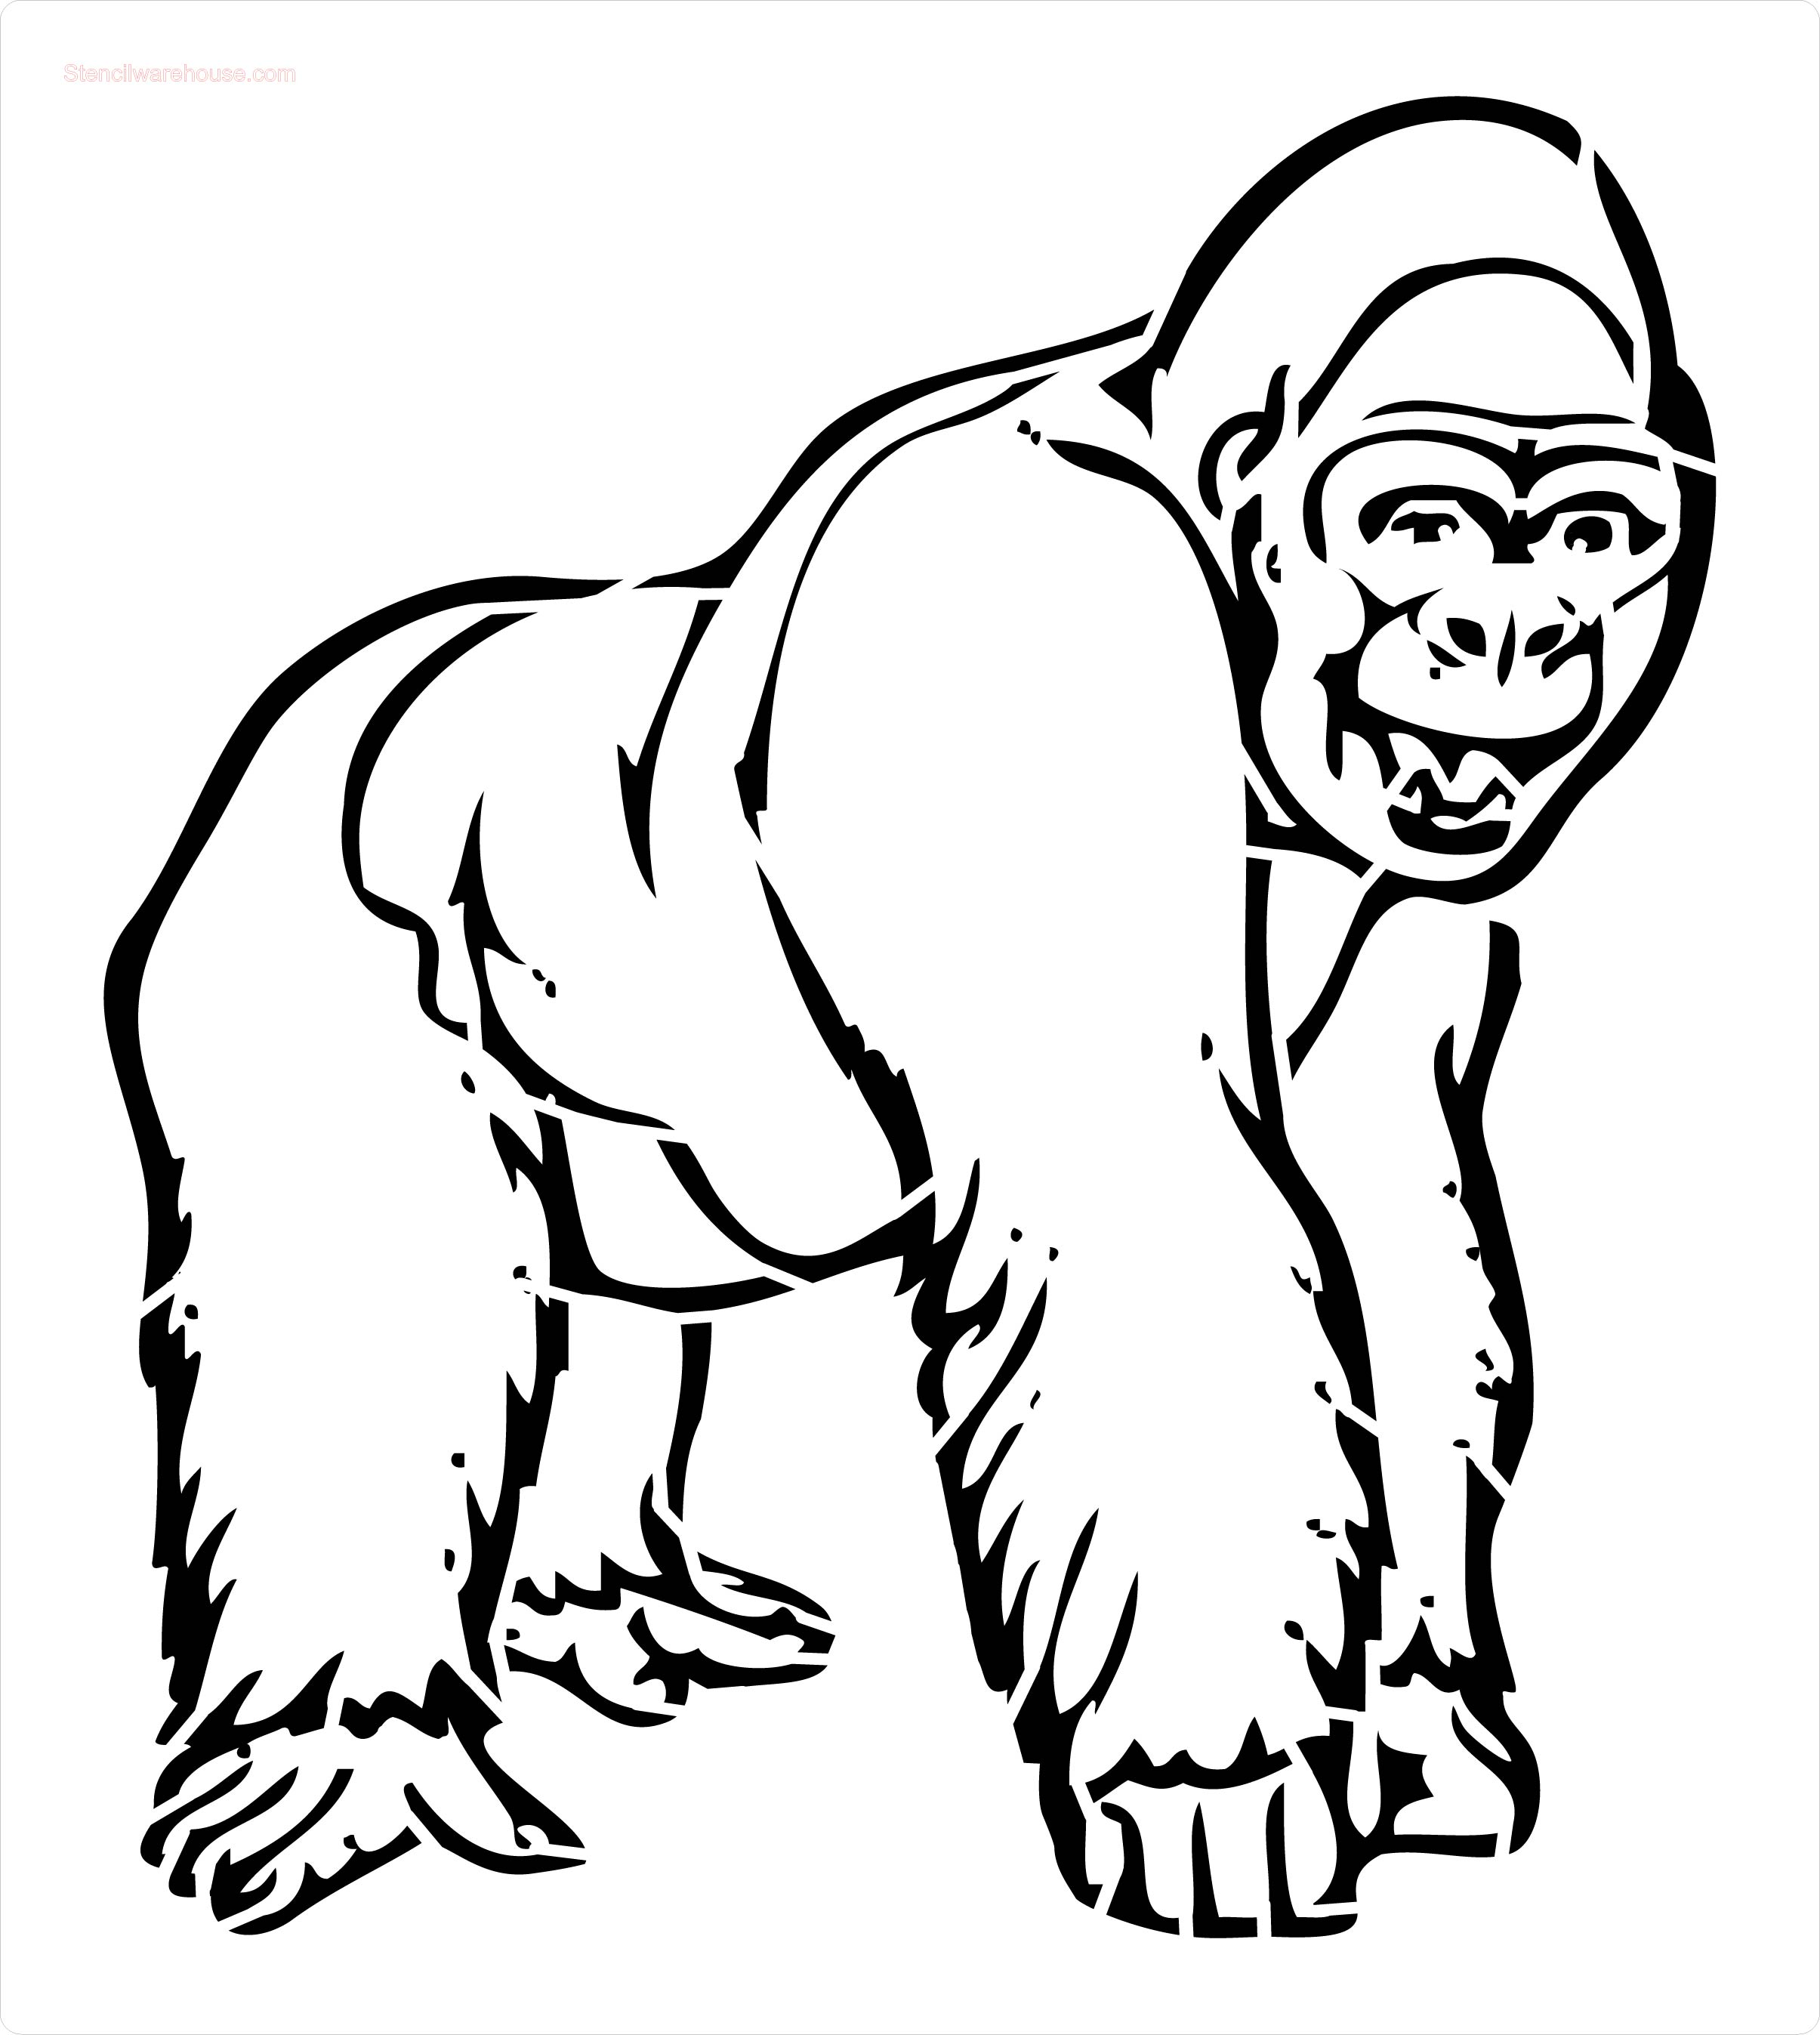 2410x2694 Gorilla Drawing Stencil For Free Download